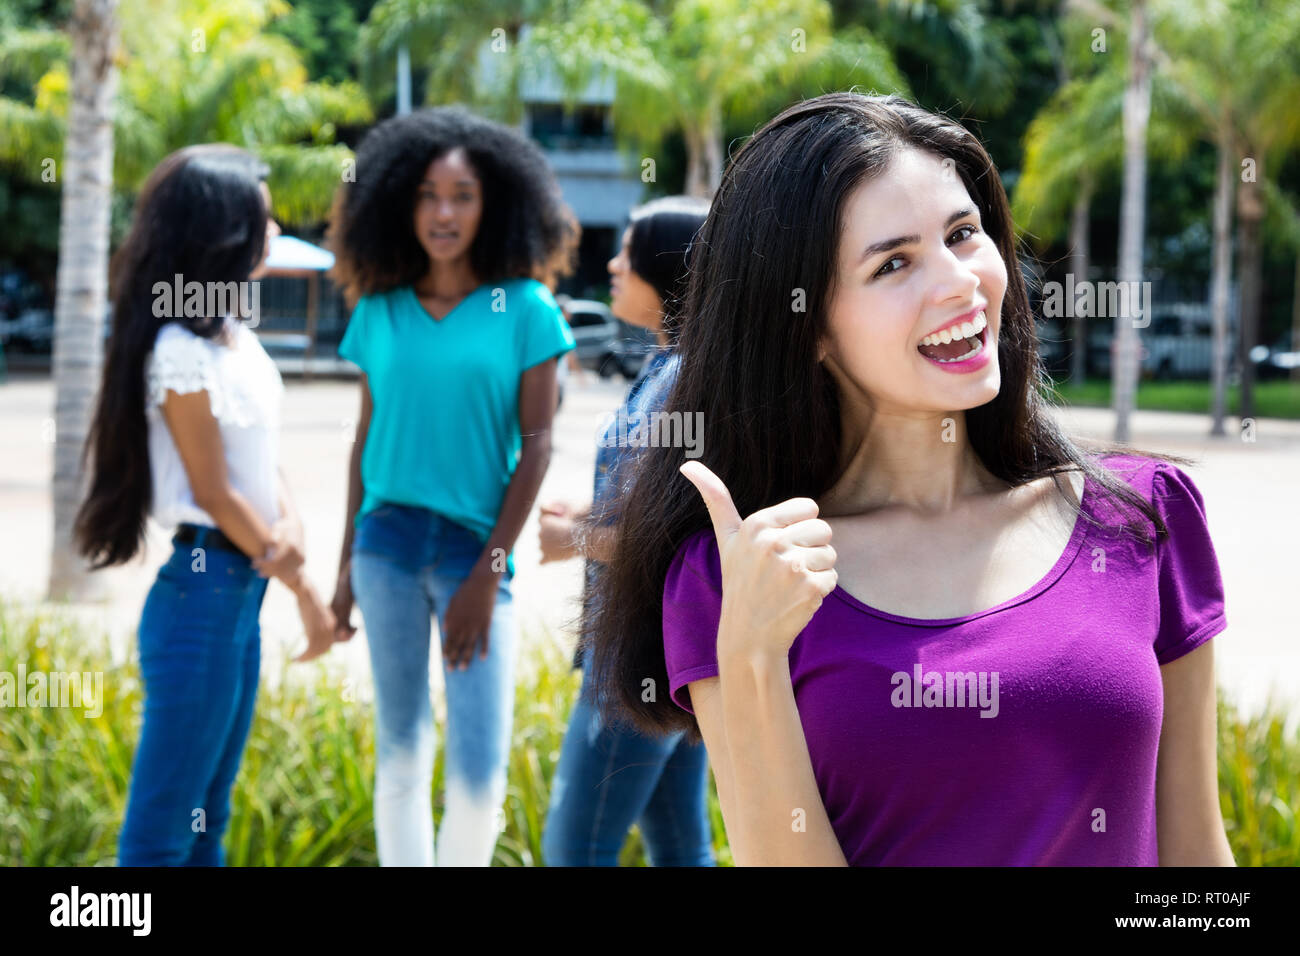 Caucasian Woman Showing Thumb With Group Of Girlfriends Outdoors In The Summer In The City